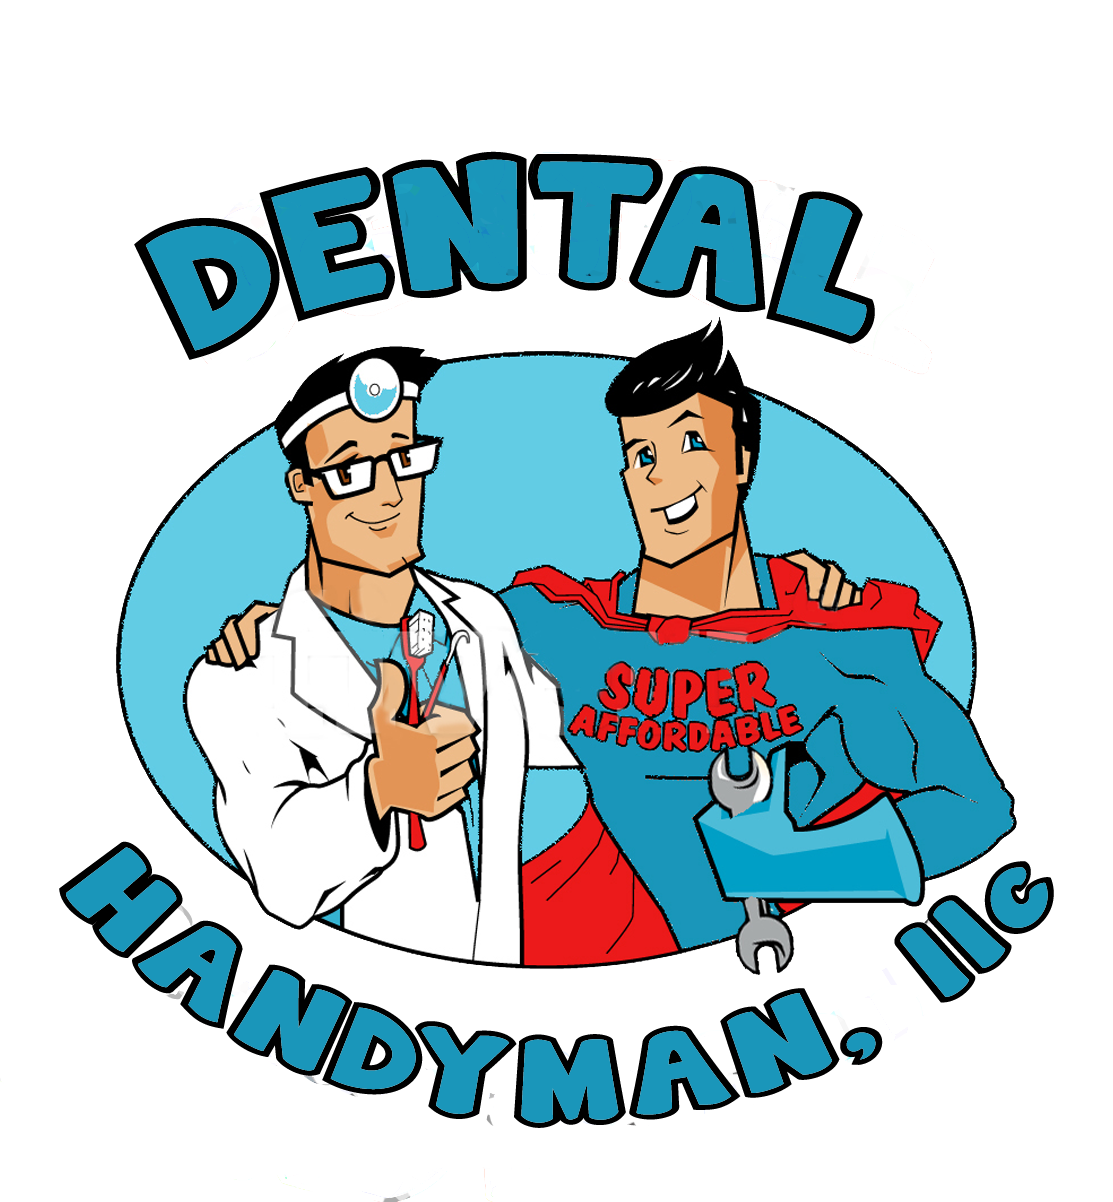 Orlando Dental Equipment Repair. Autoclaves, Hand pieces, Chairs, Delivery Units, Compressors, Vacuums